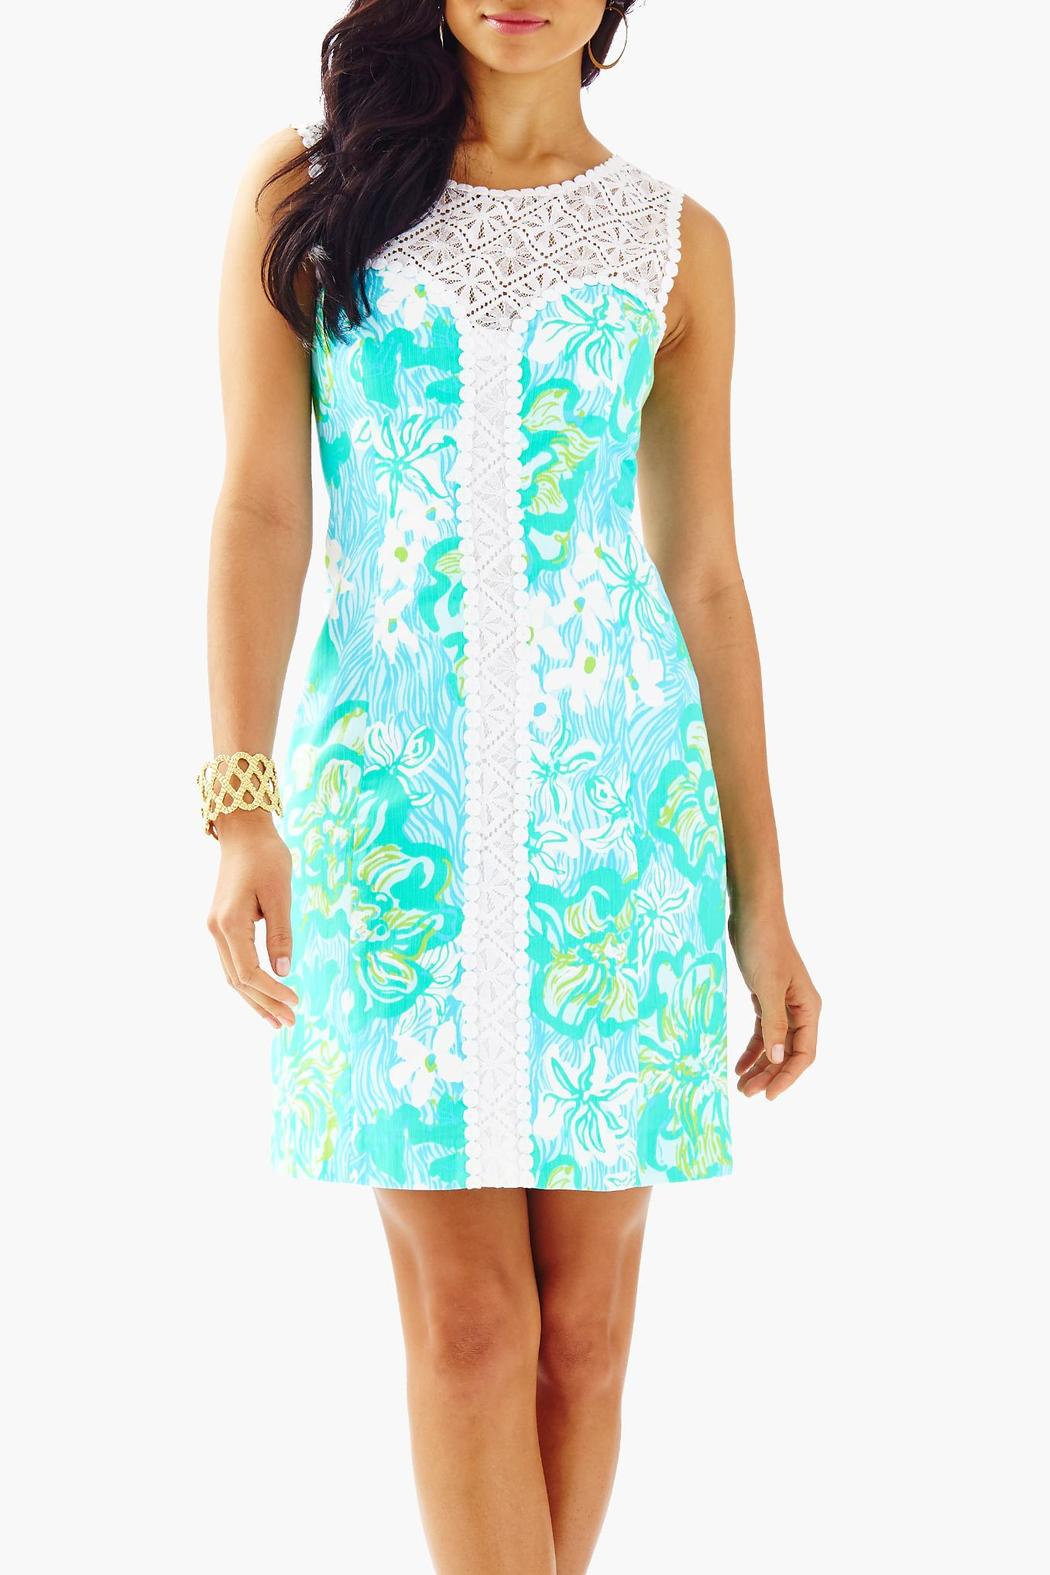 Lilly Pulitzer Sofia Lace-Shift Dress from Sandestin Golf and Beach ...